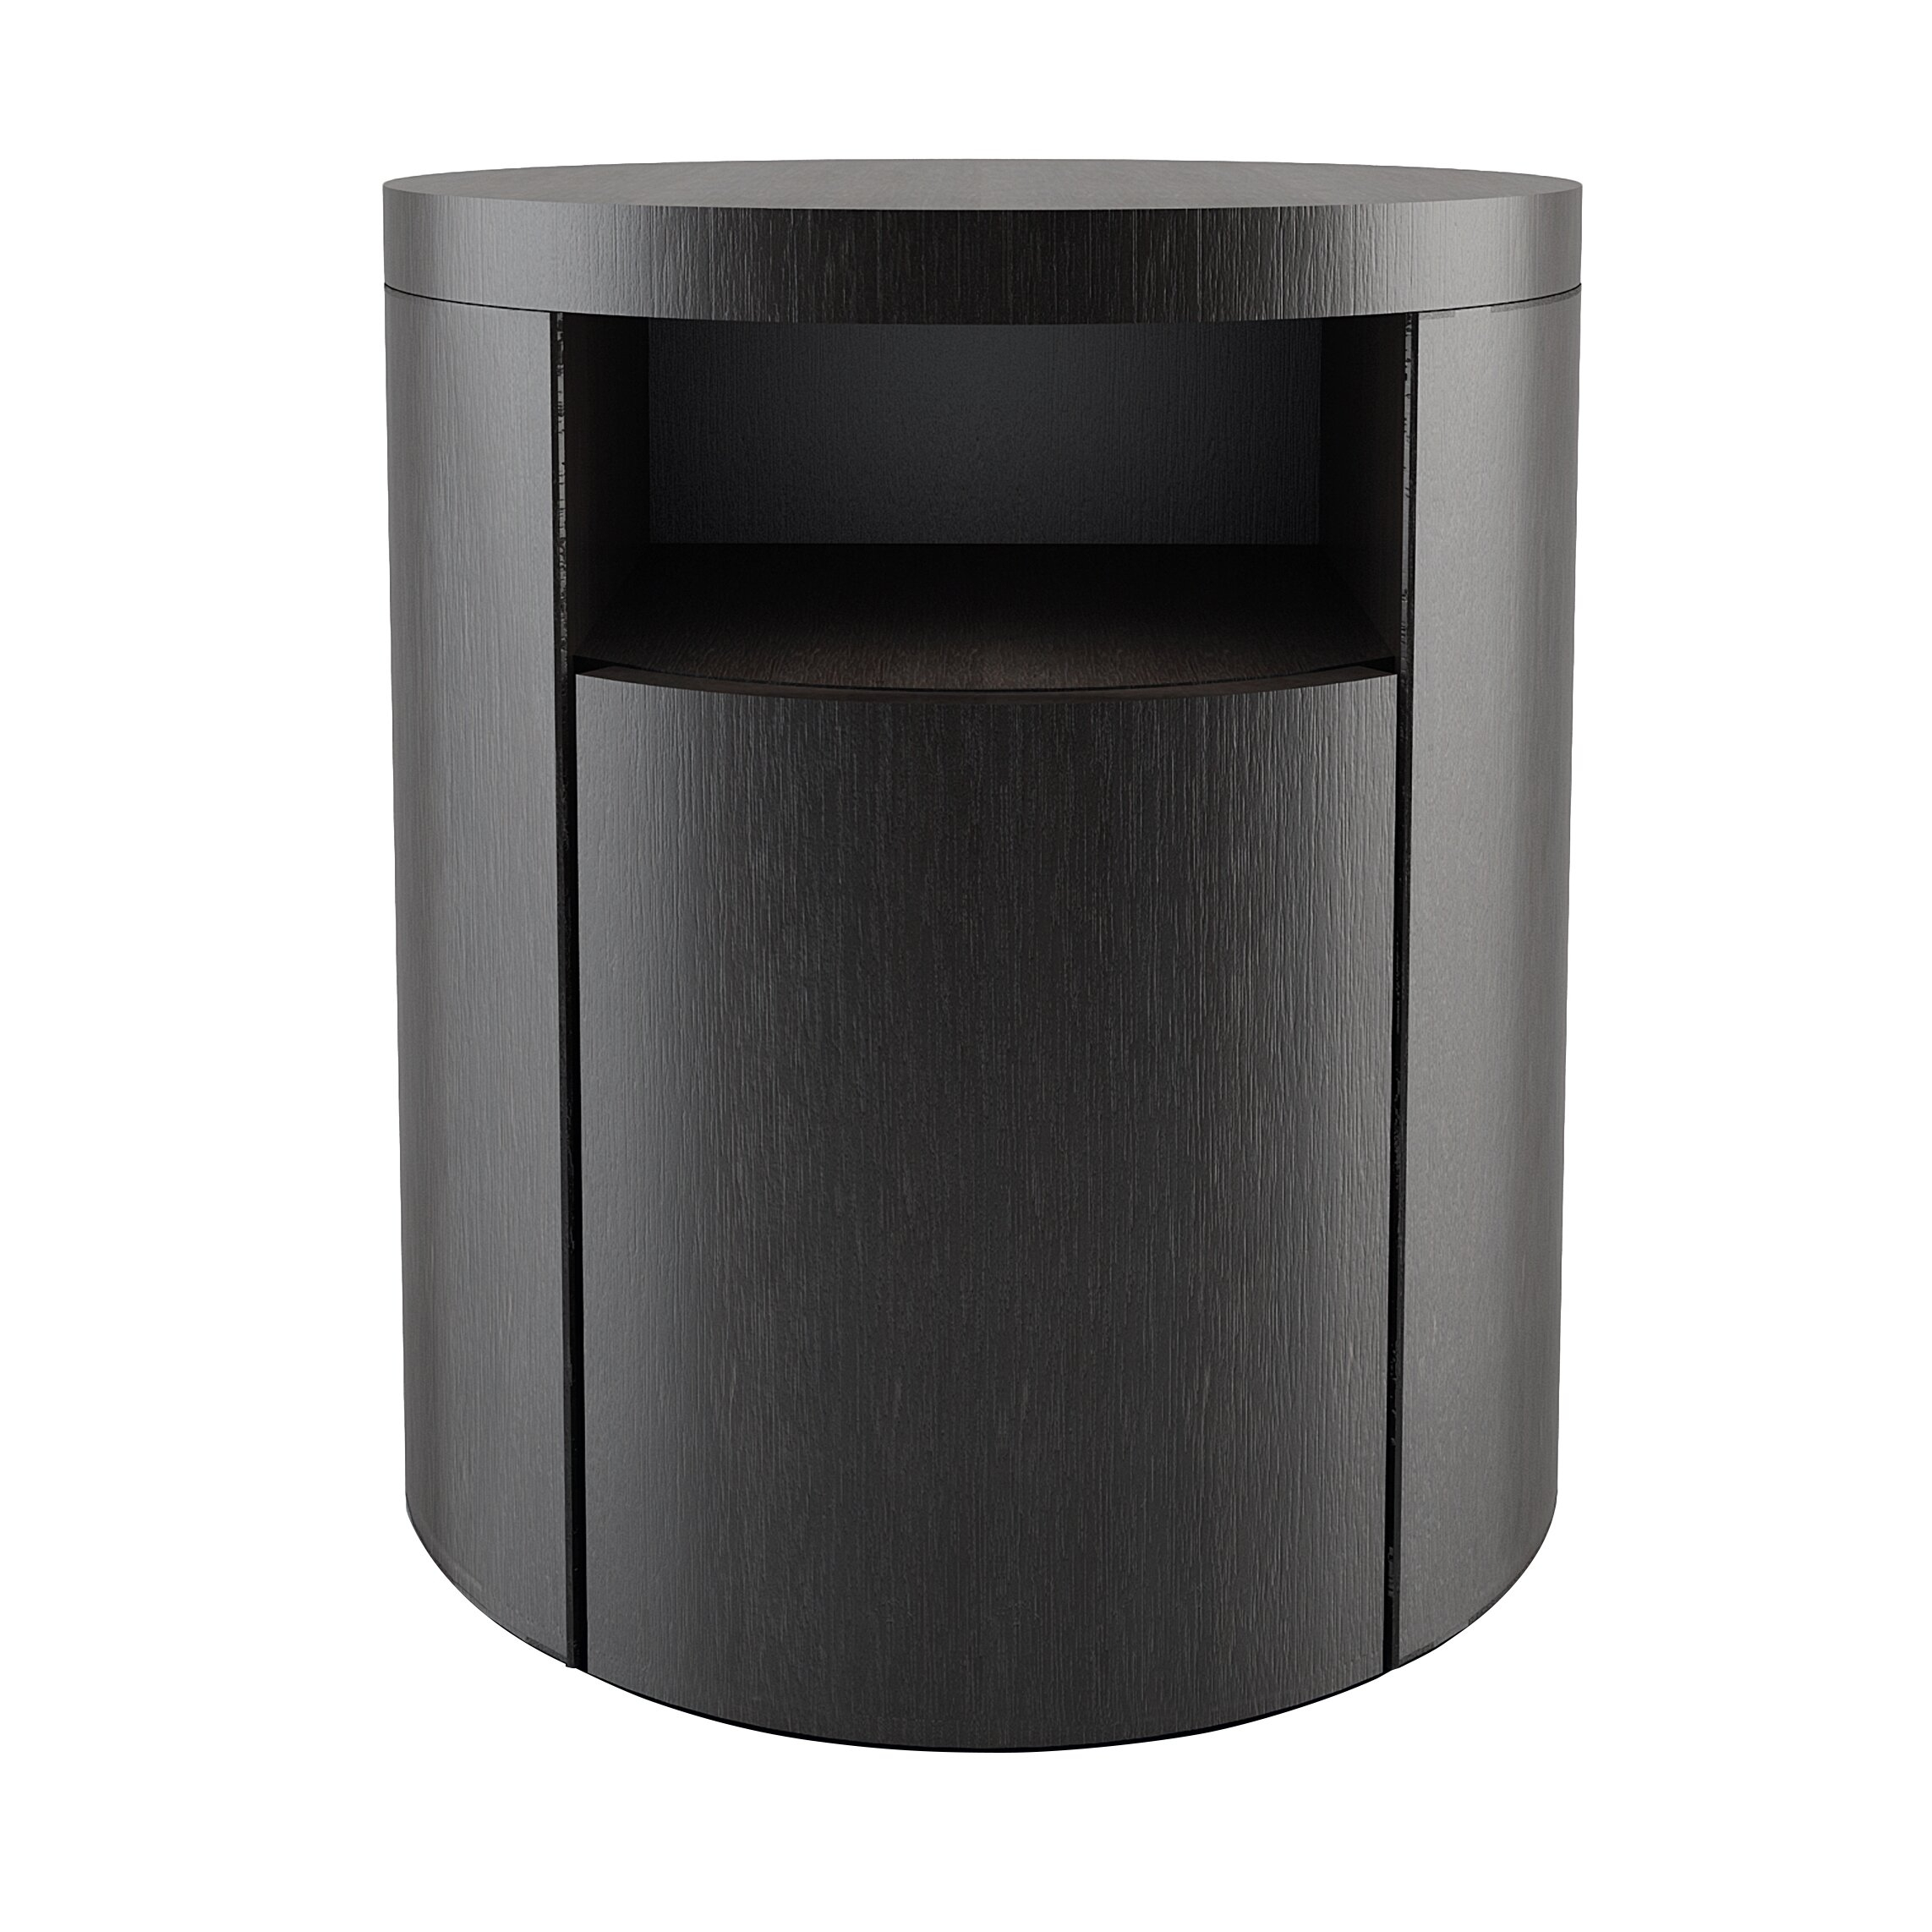 Elegant Modloft Mulberry Nightstand, Set Of 2